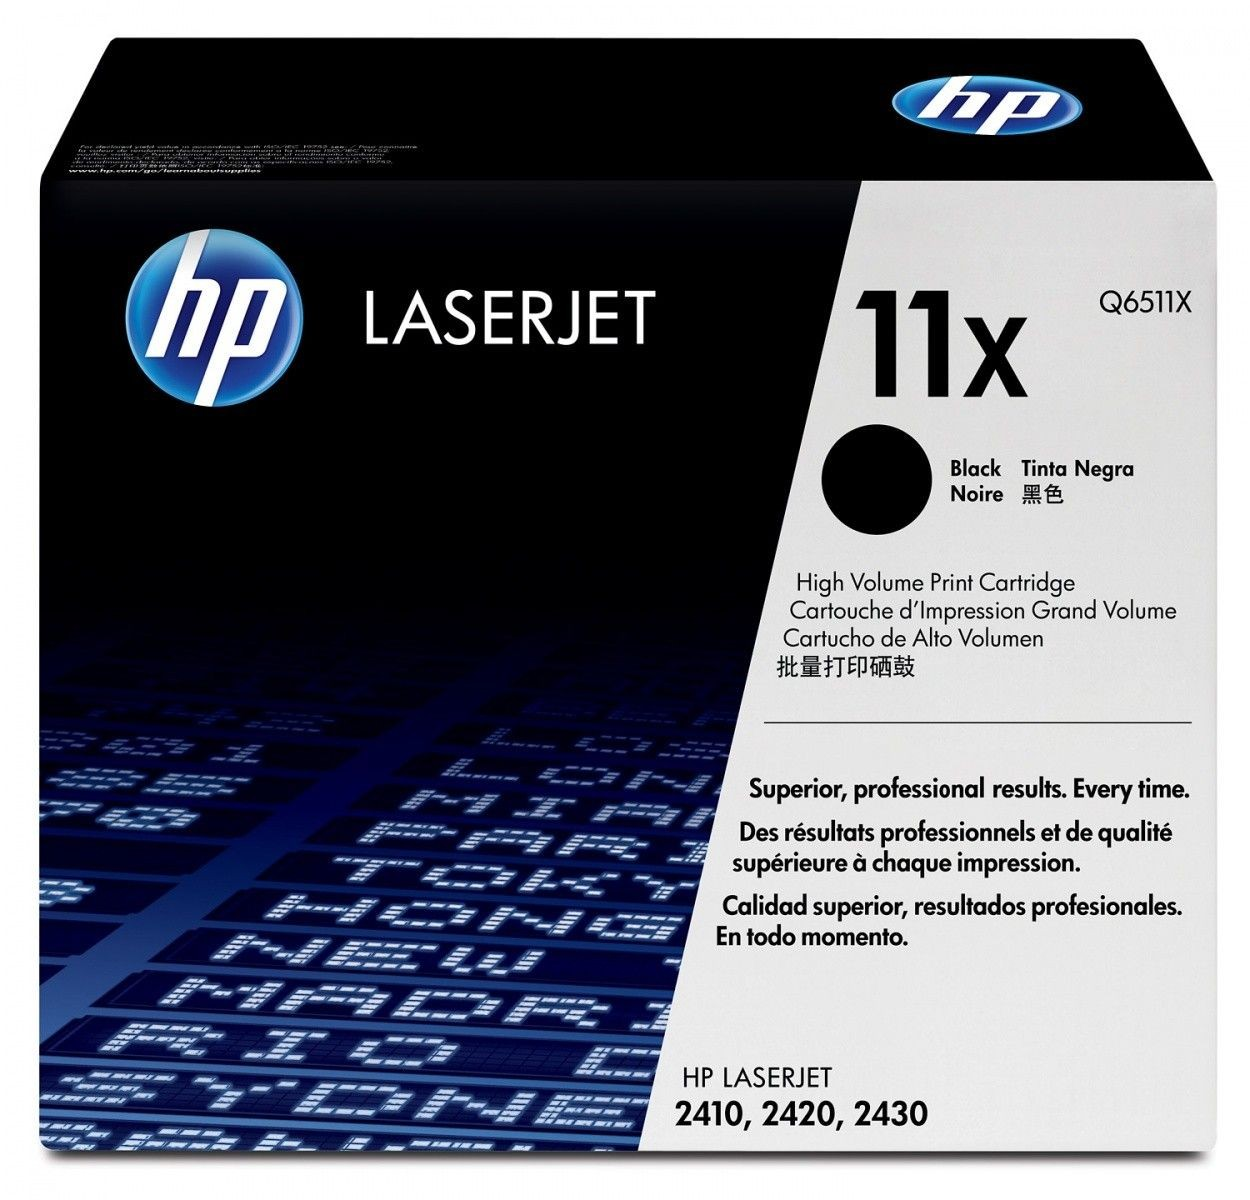 HP TONER DO LJ 2410/20/30 Q6511X 12000 str